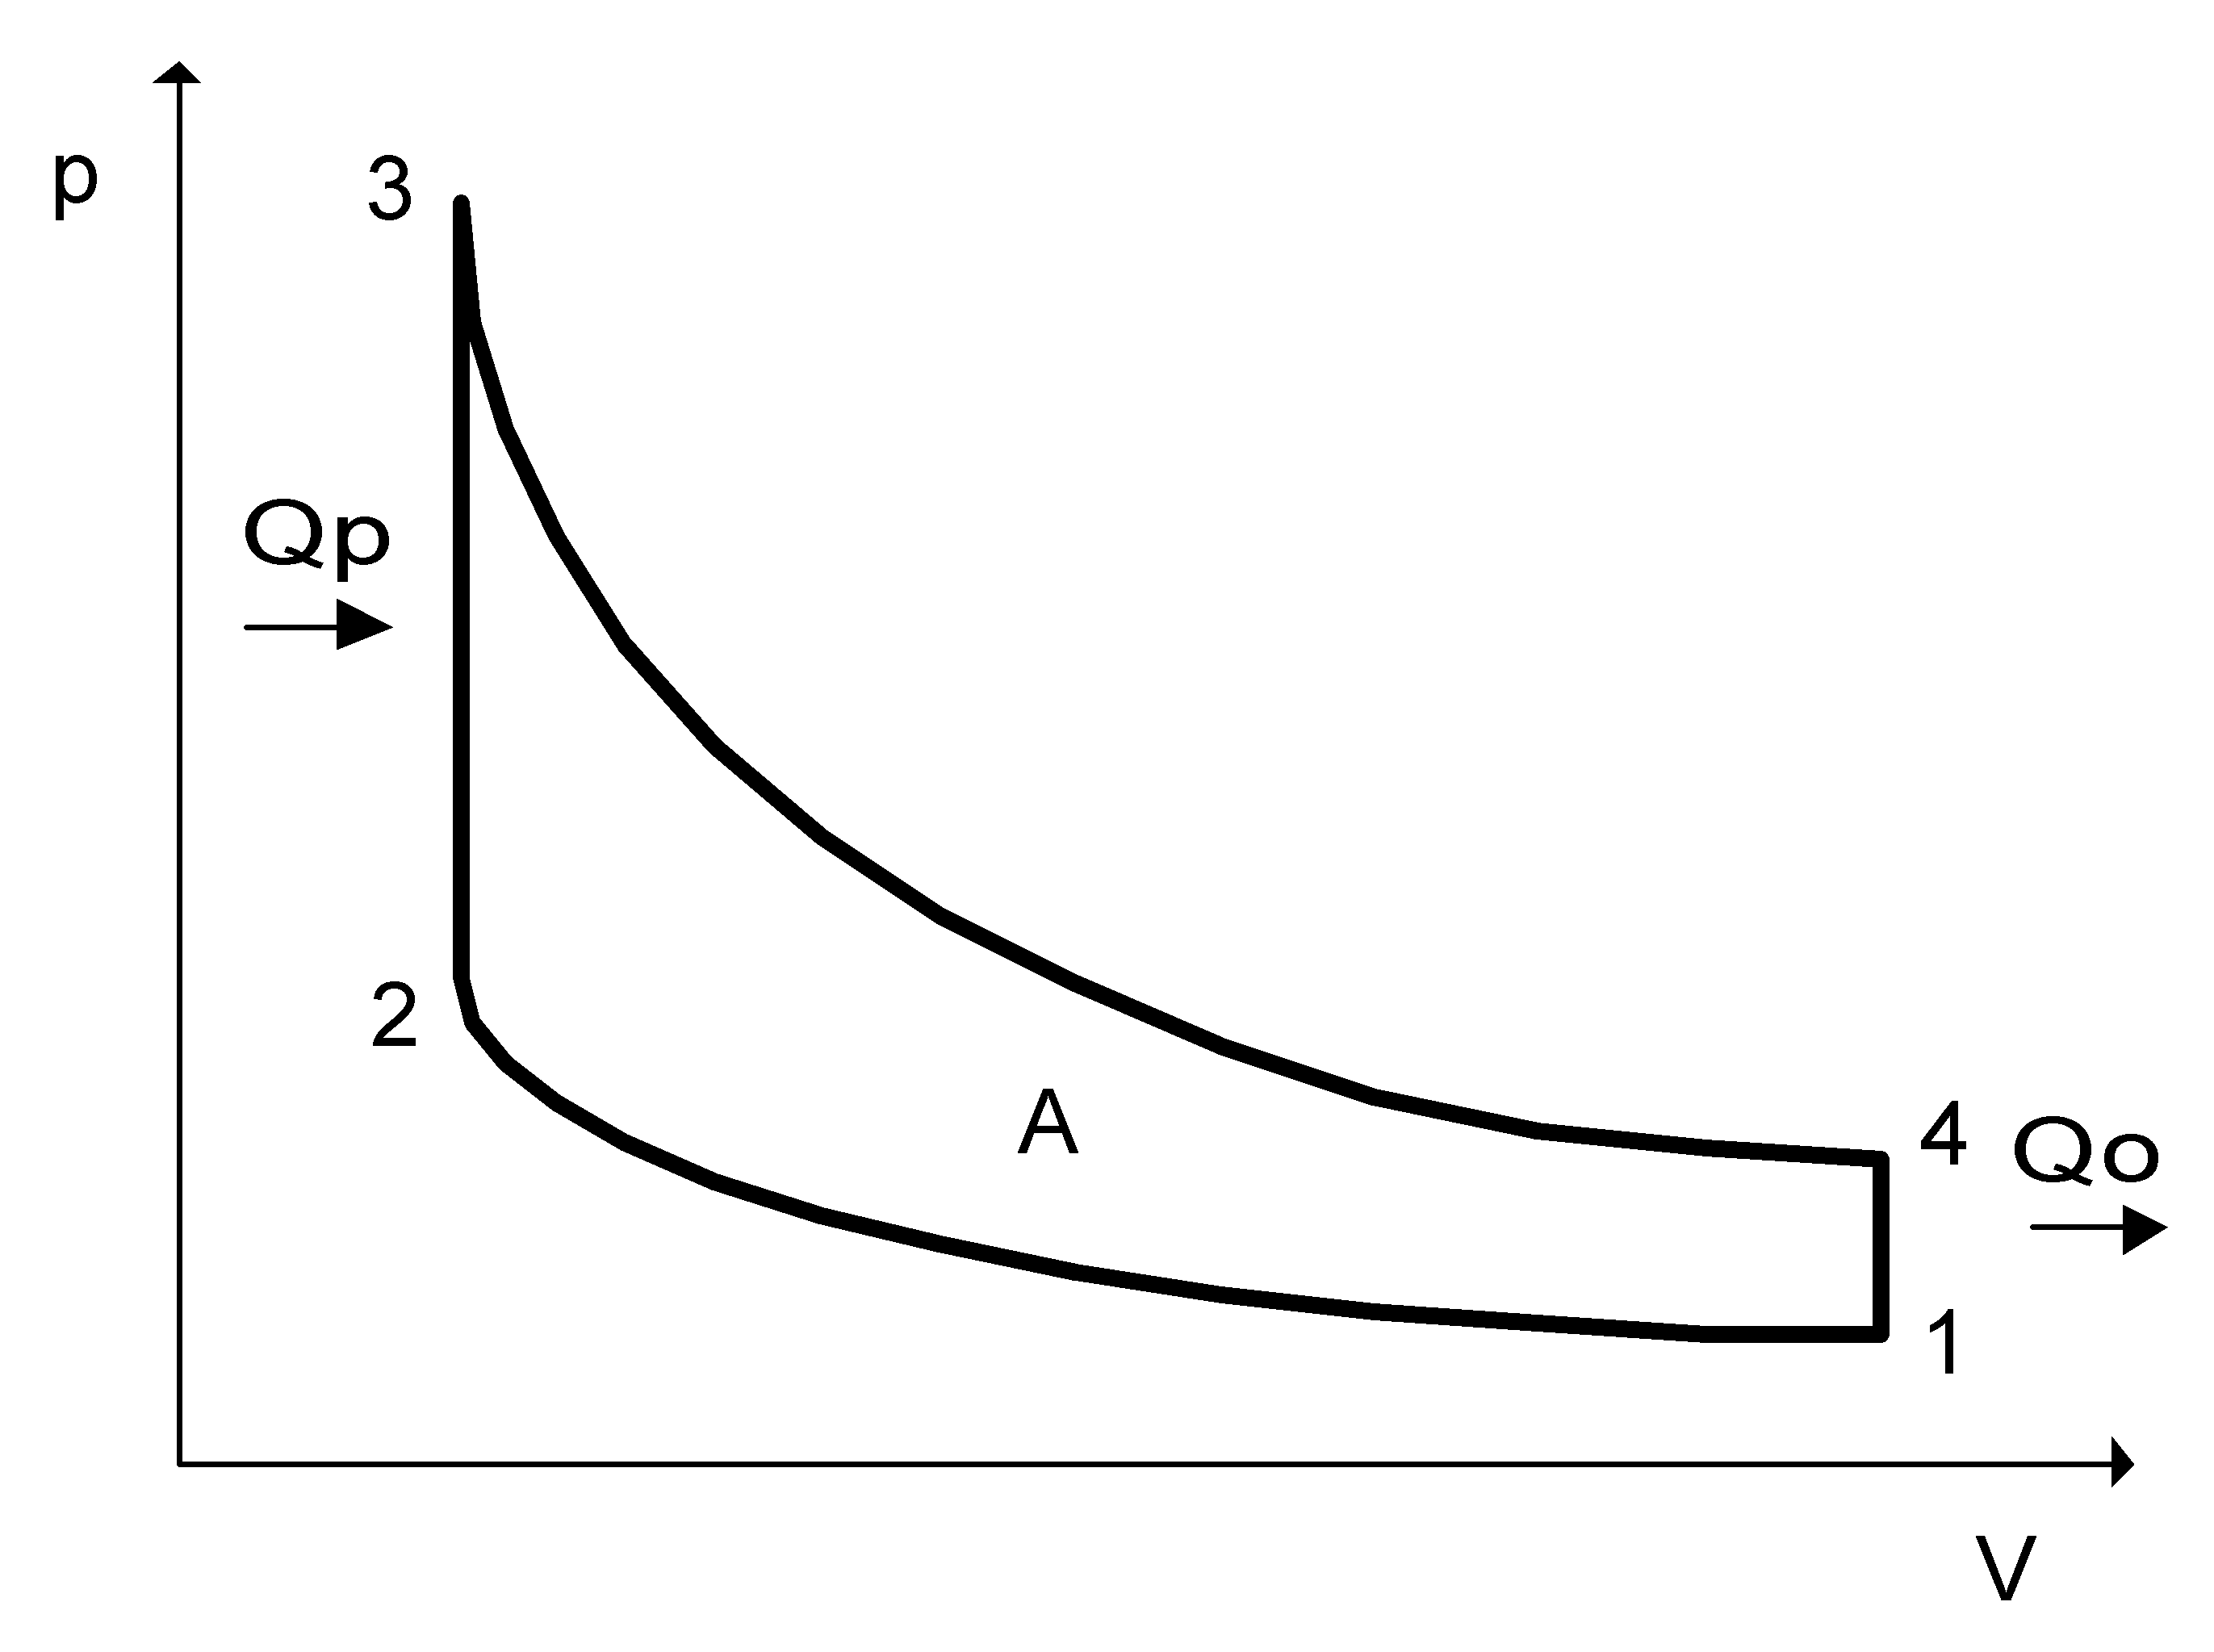 Otto cycle in p-V diagram.